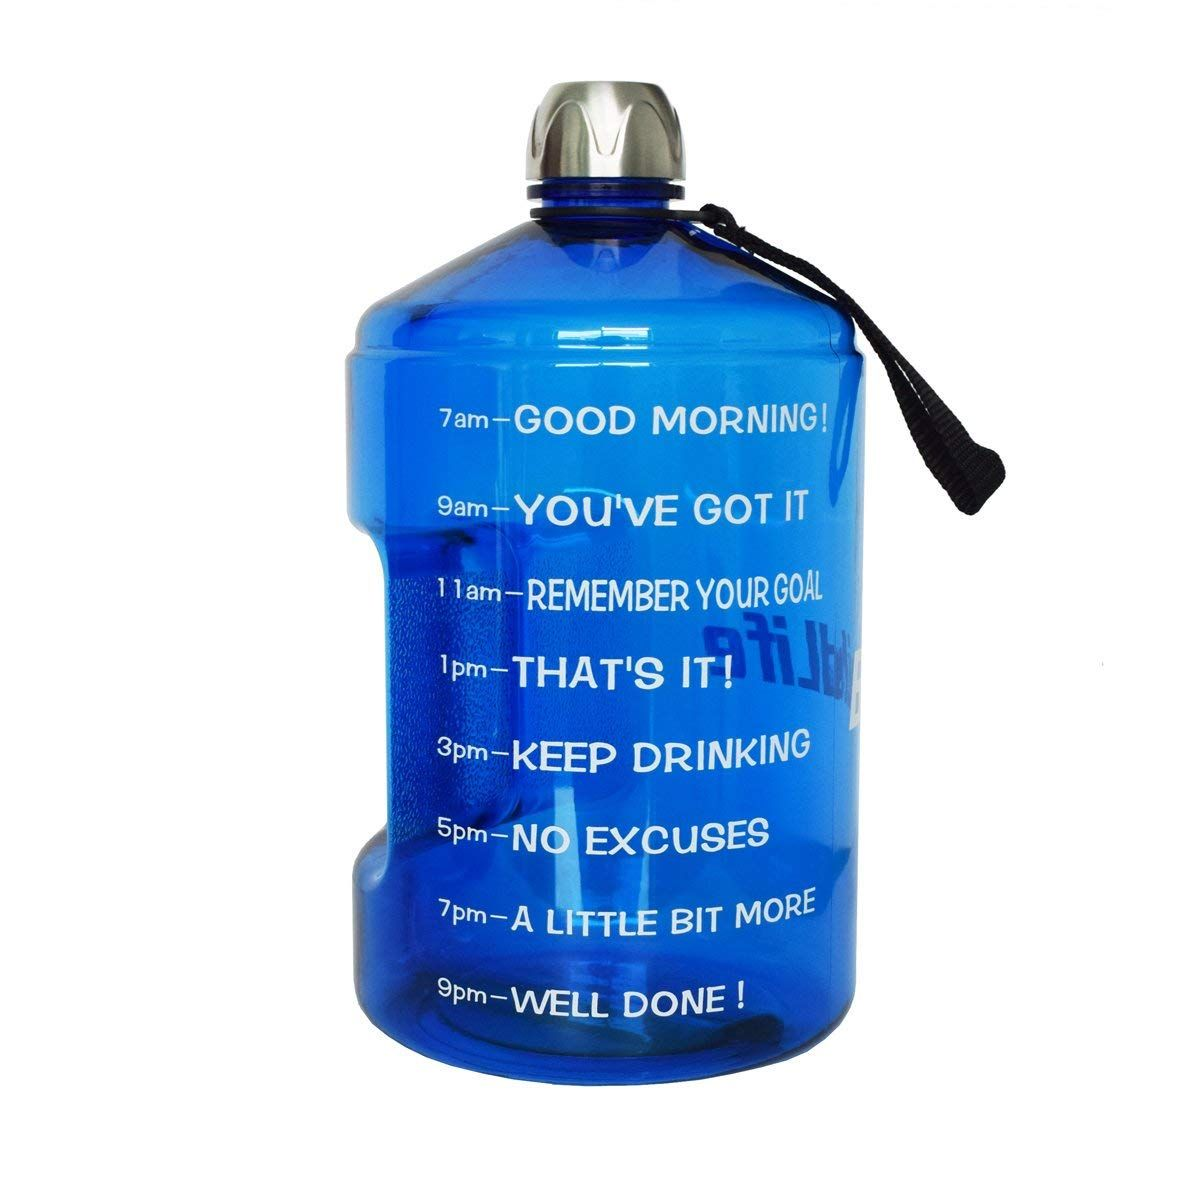 1 Gallon Water Bottle Motivational Fitness Workout With Time Marker And Encouraging Qoutes Water Bottle Challenge Gallon Water Bottle 1 Gallon Water Bottle